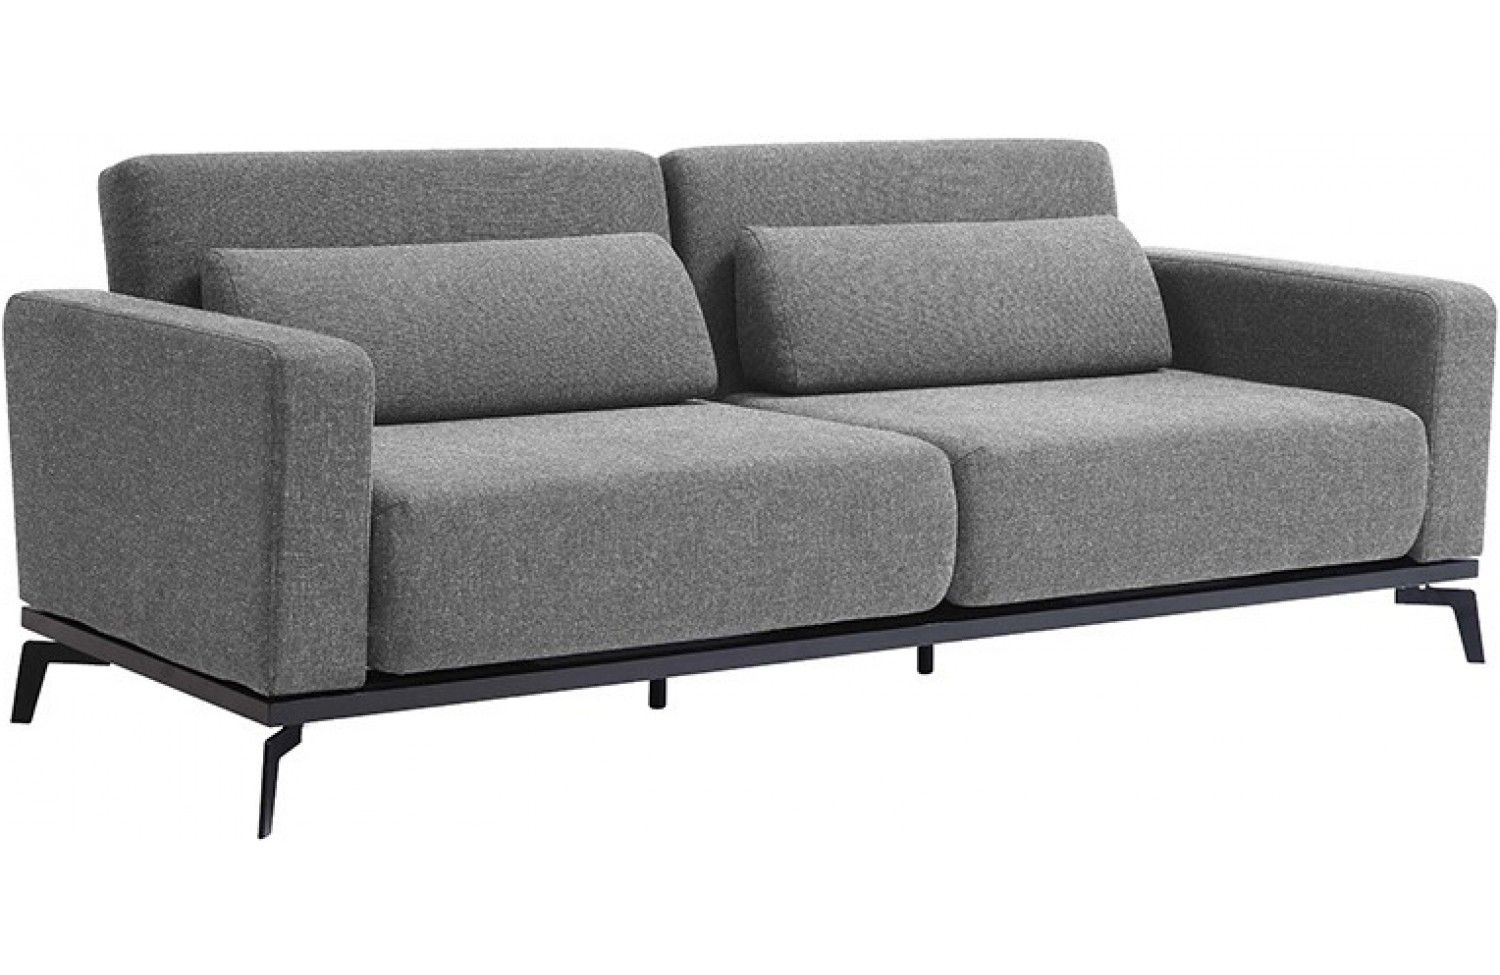 Meuble Contemporain Canapé Convertible Design Malmo Gris Divani Pinterest